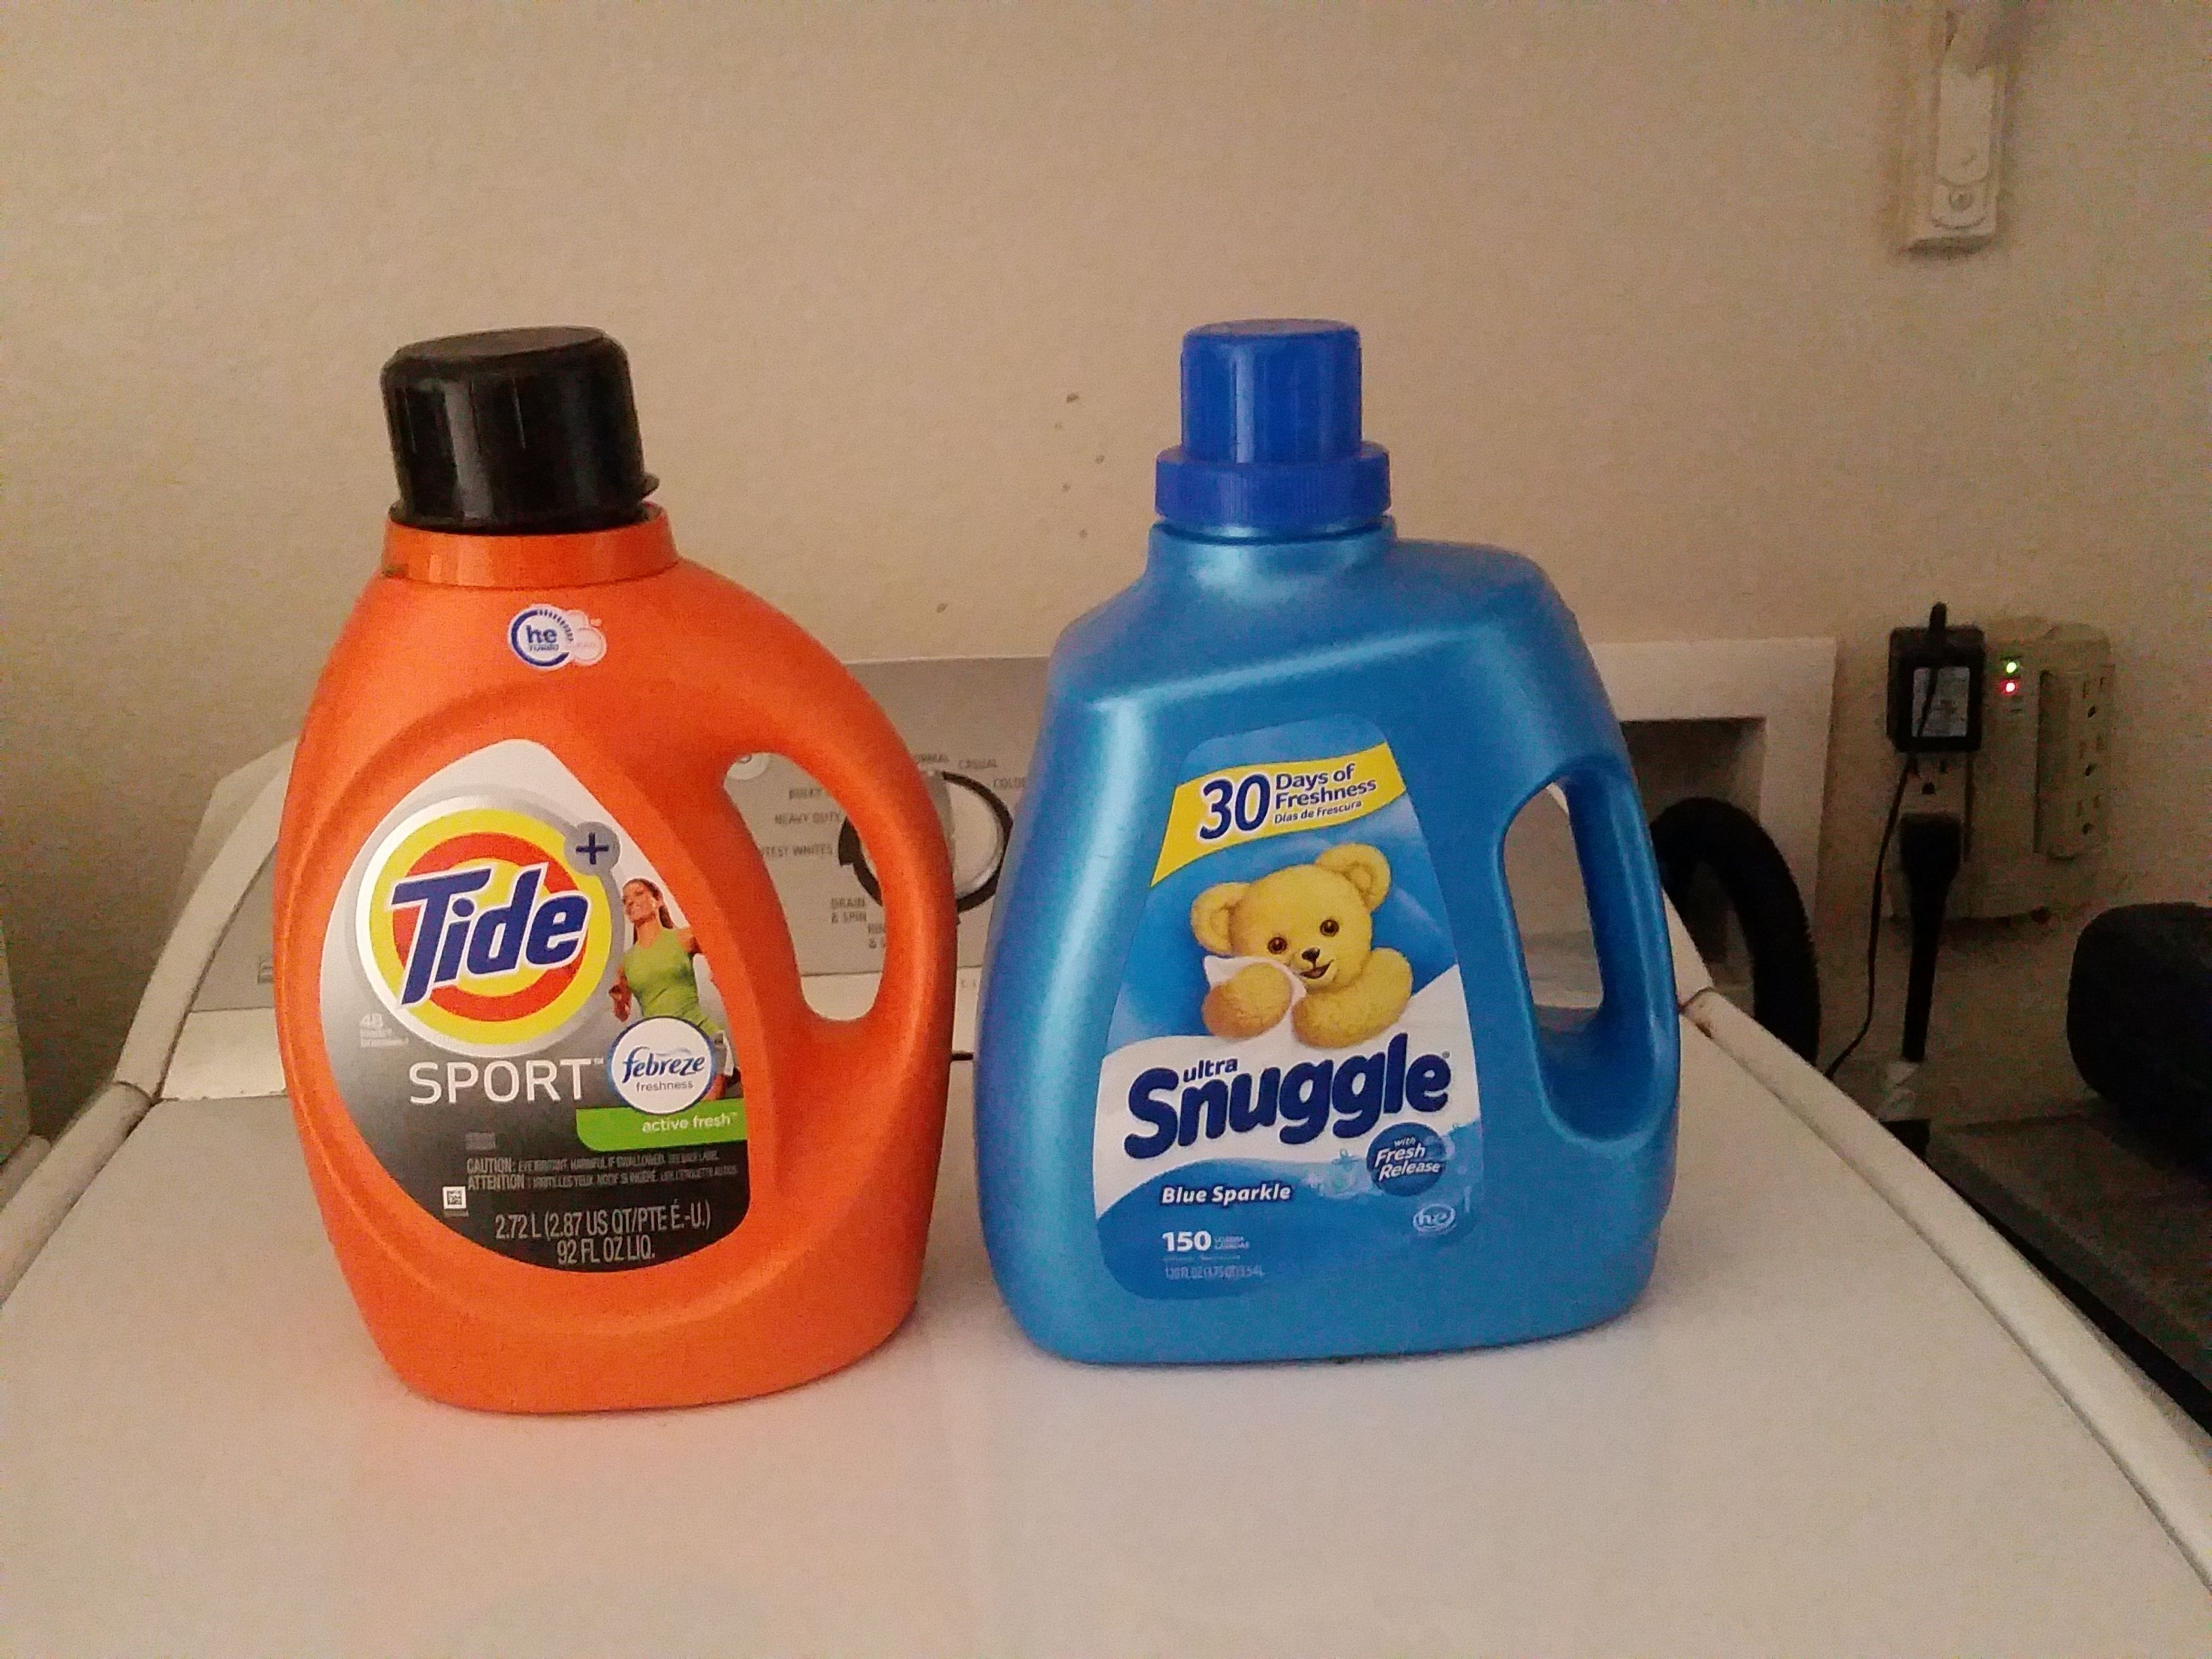 How to choose a detergent